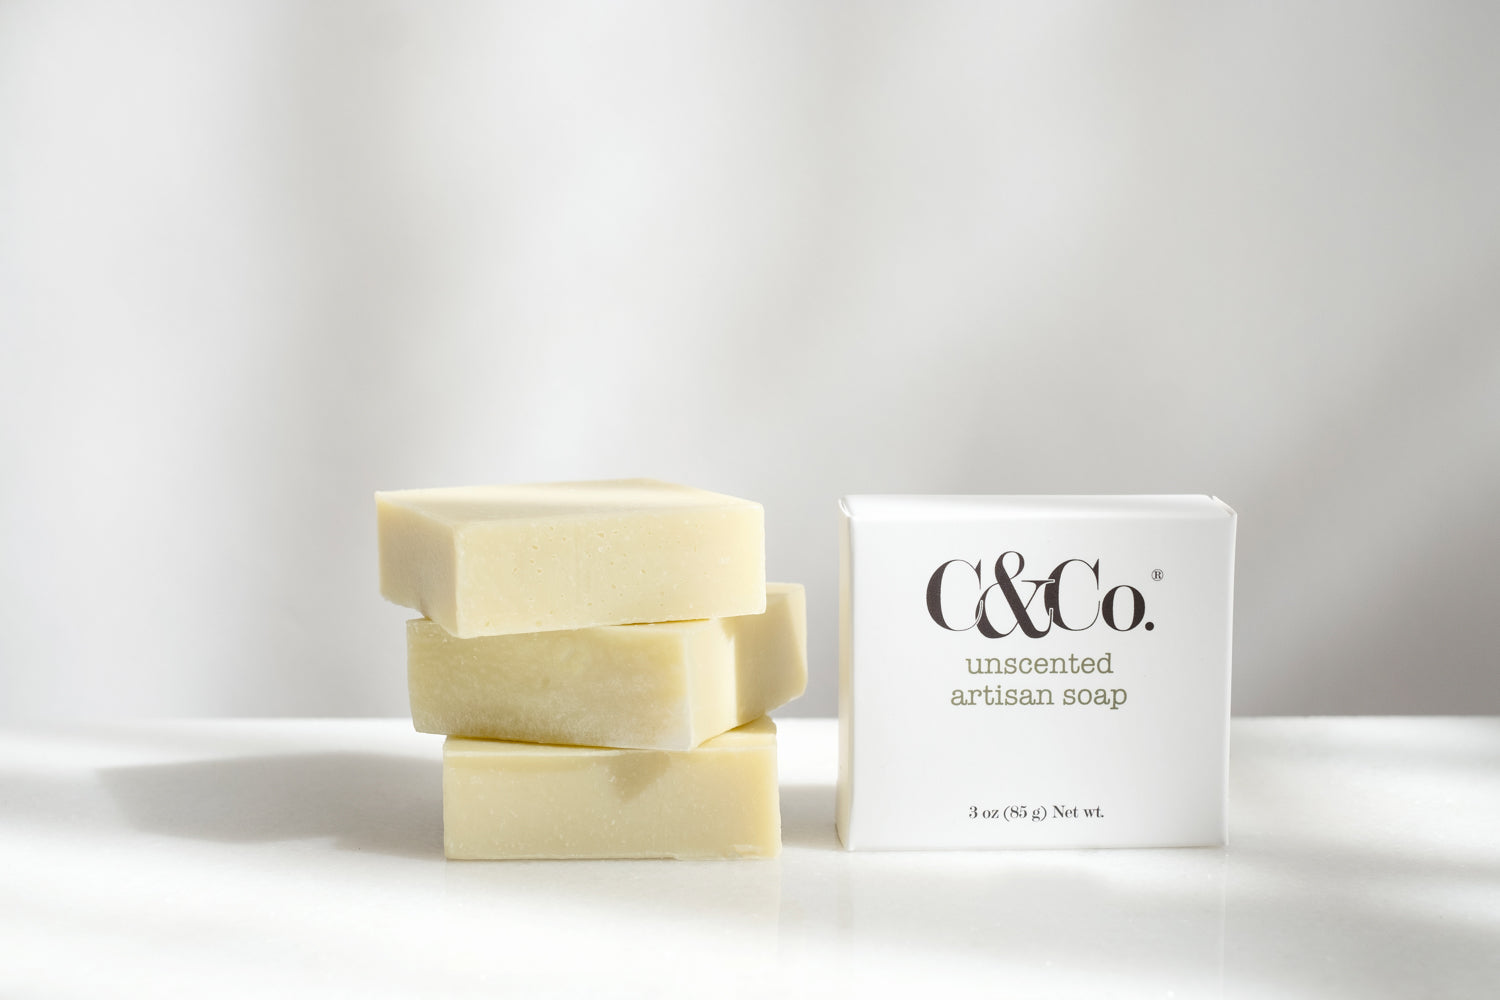 Unscented Artisan Soap - C & Co.